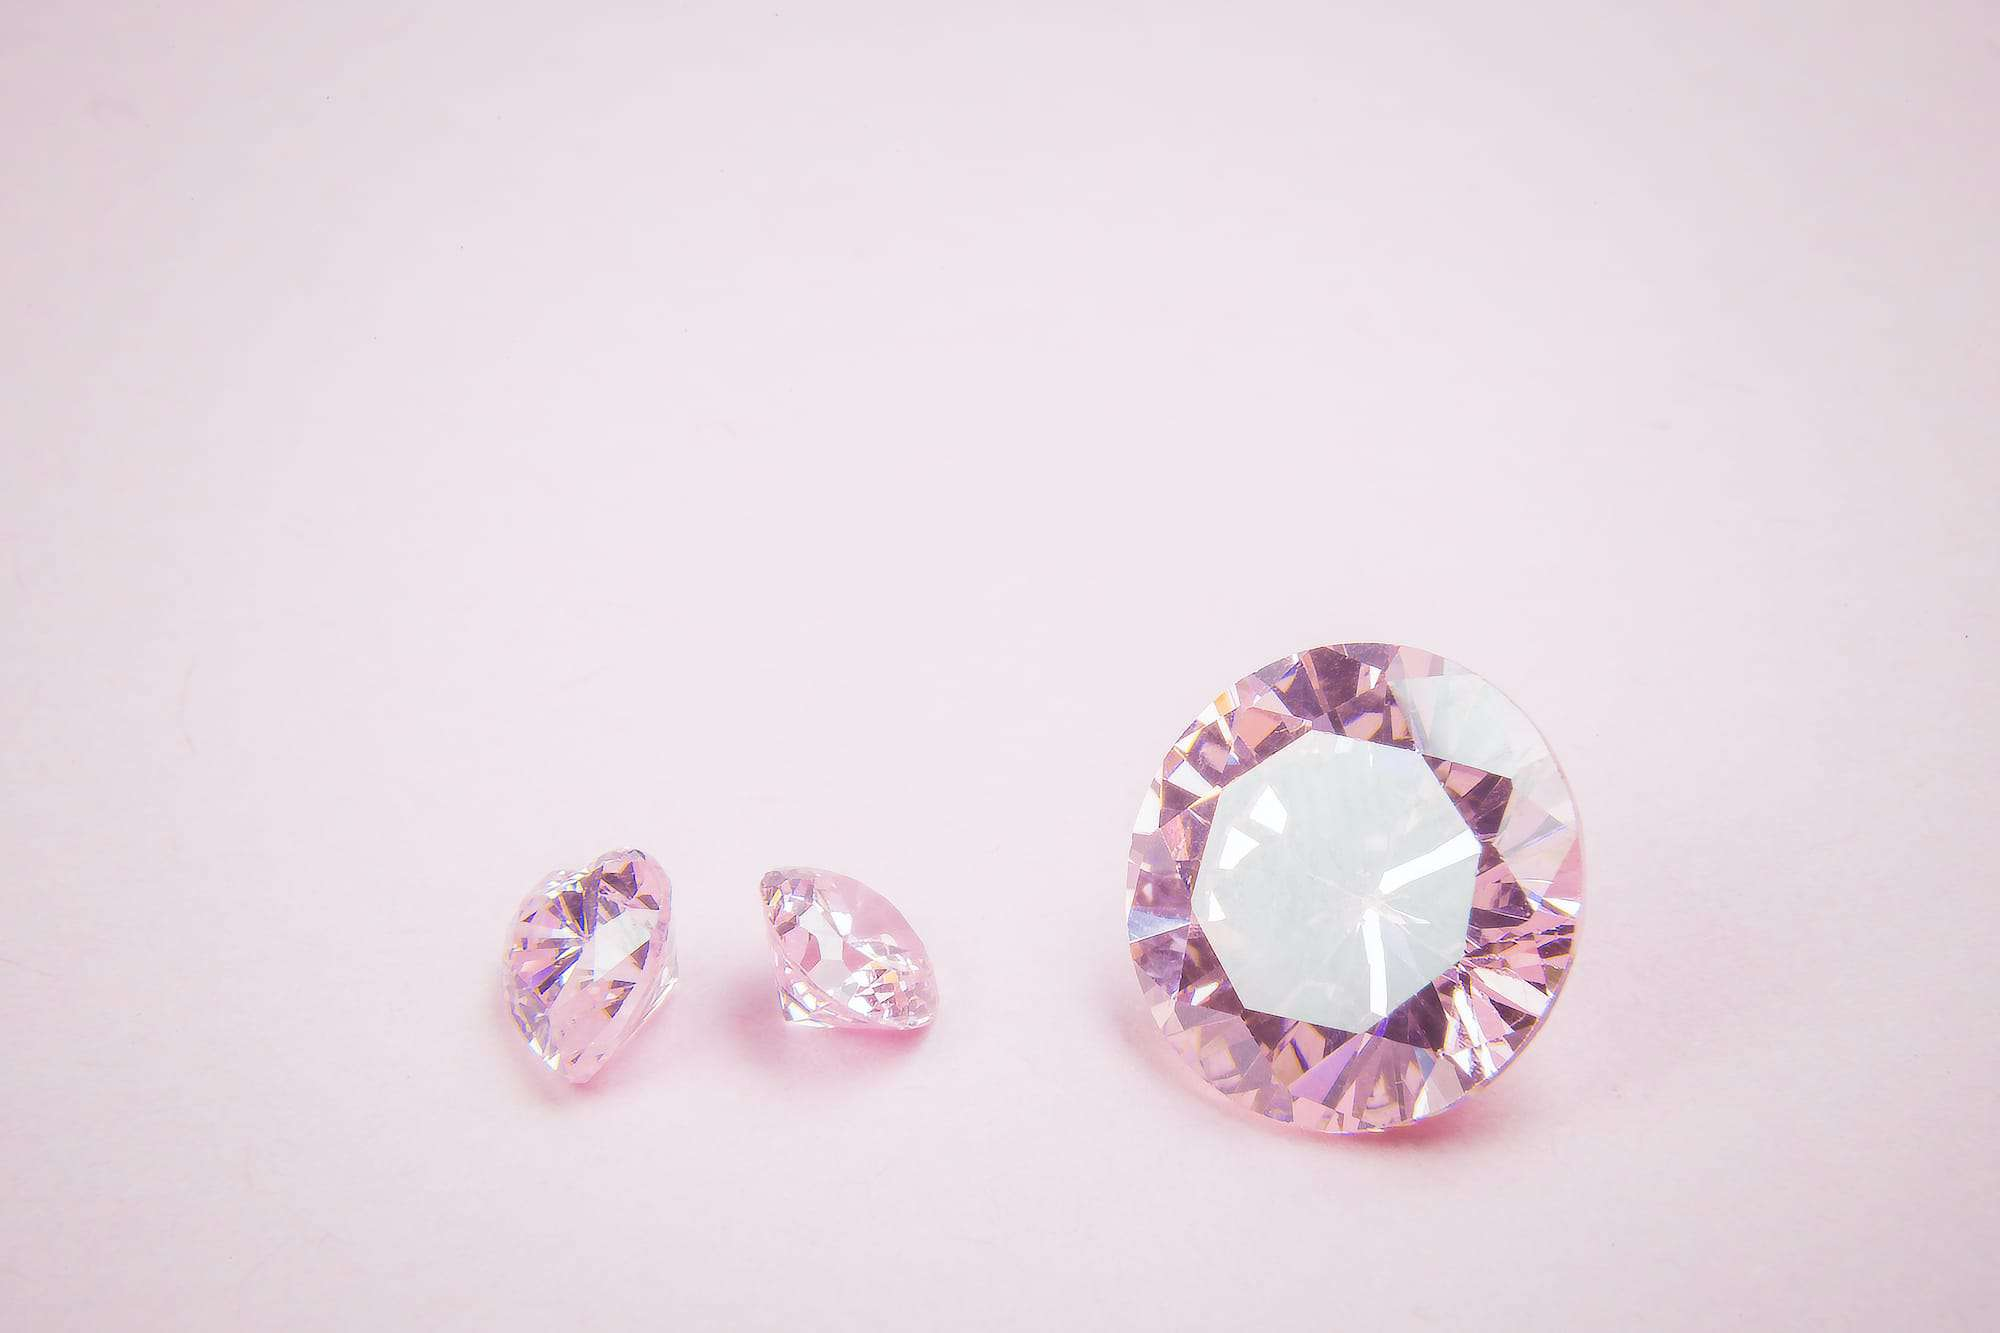 How Rare are Pink Diamonds?